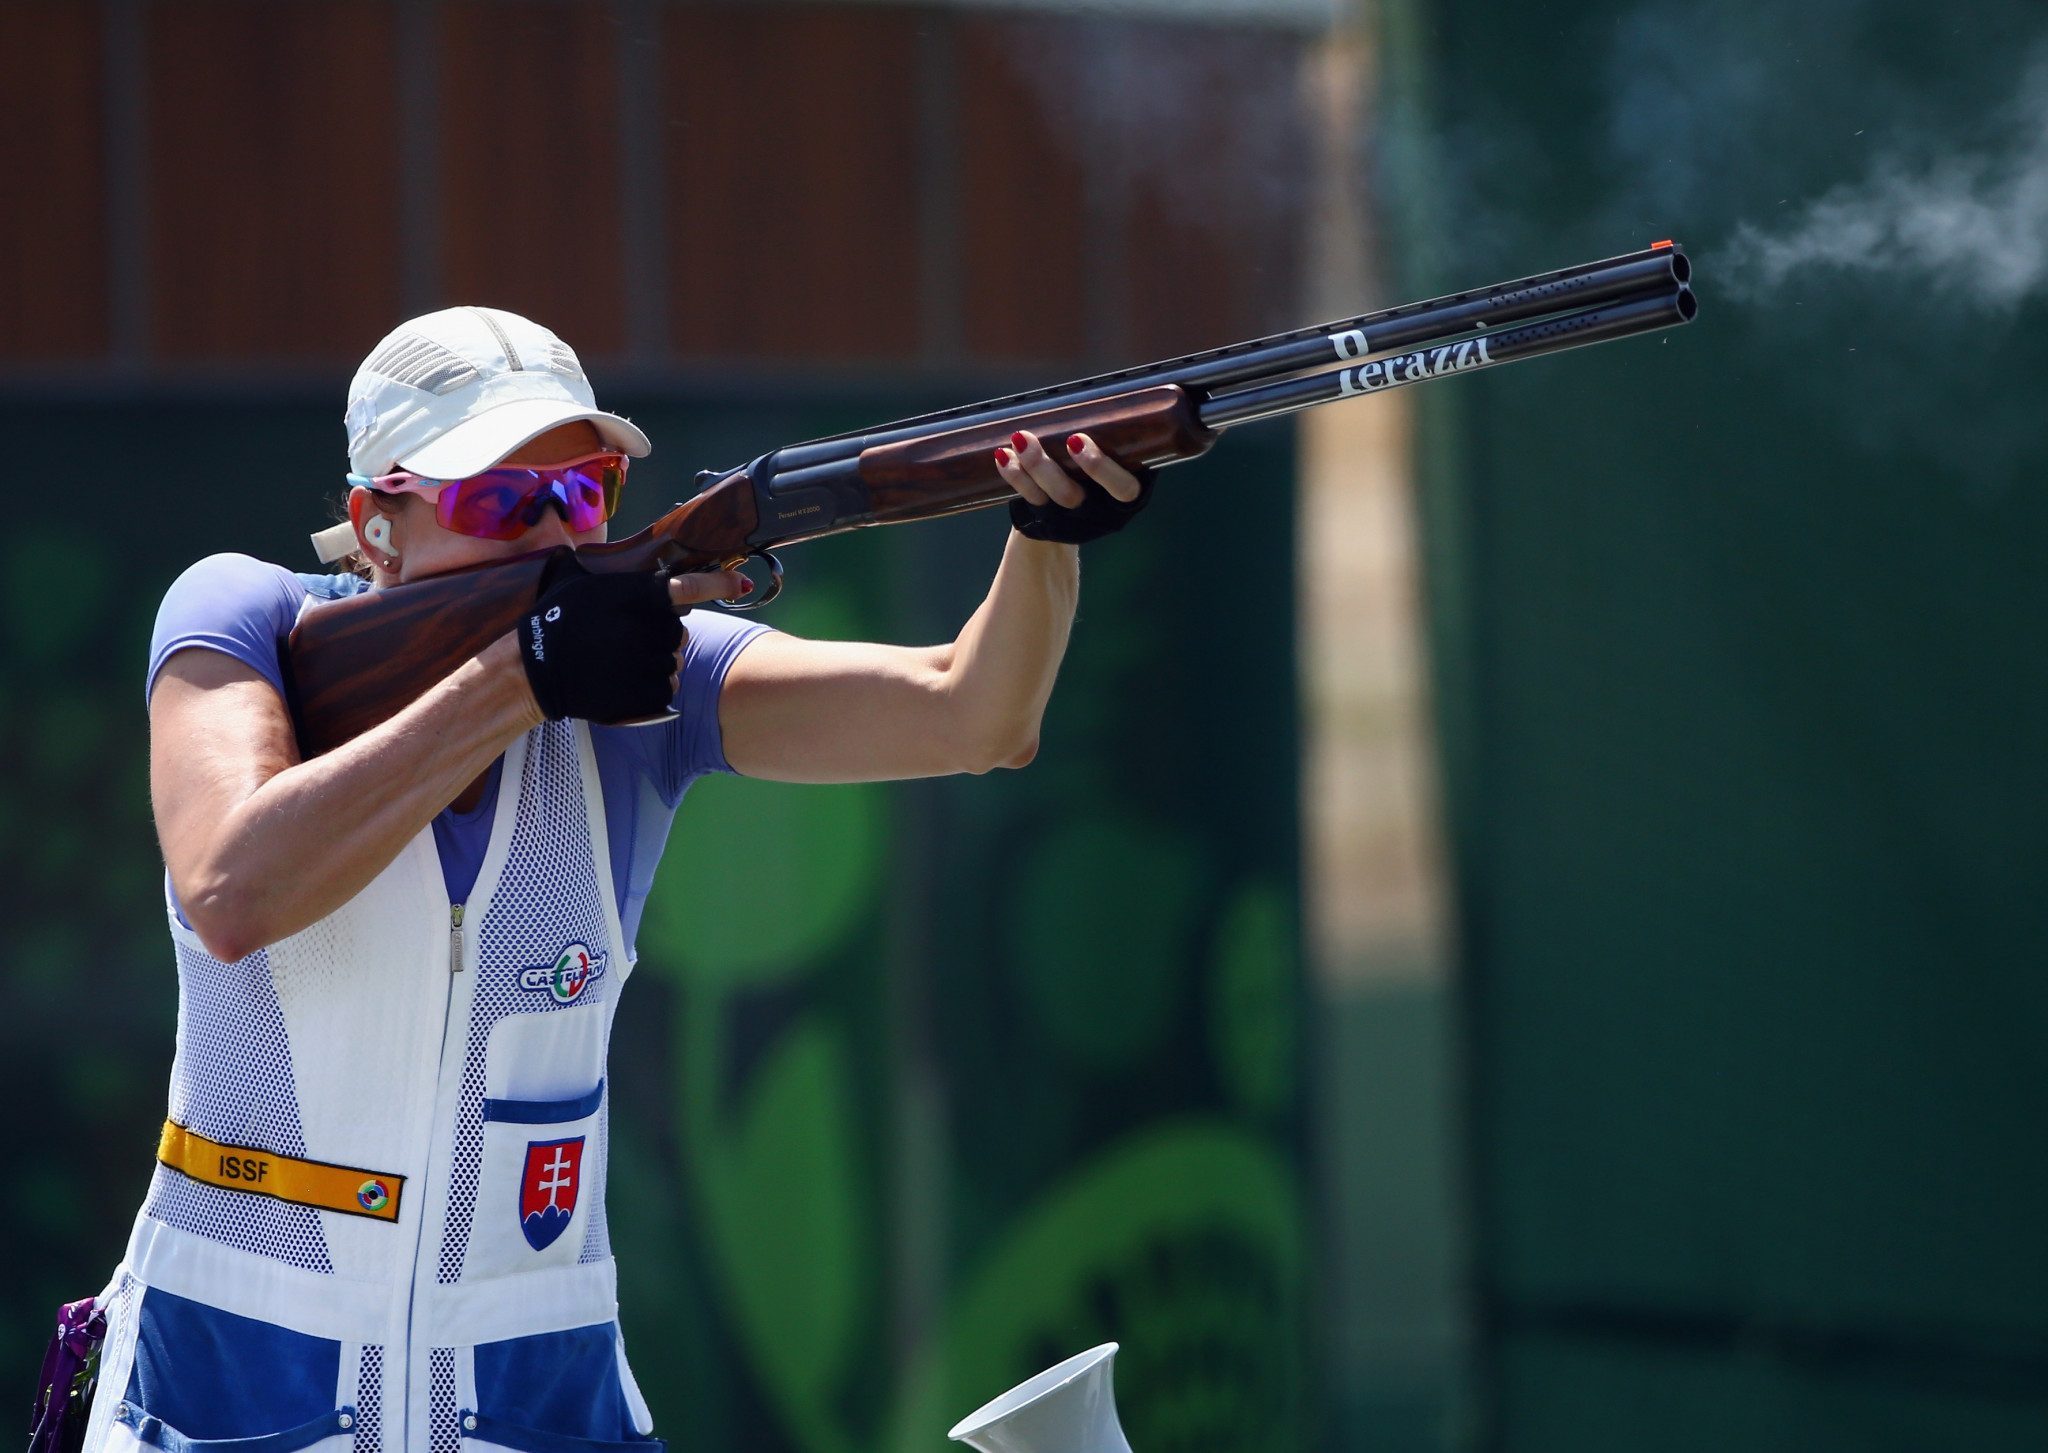 Danka Bartekova claimed the gold in the women's skeet competition at the European Shotgun Championships ©Getty Images